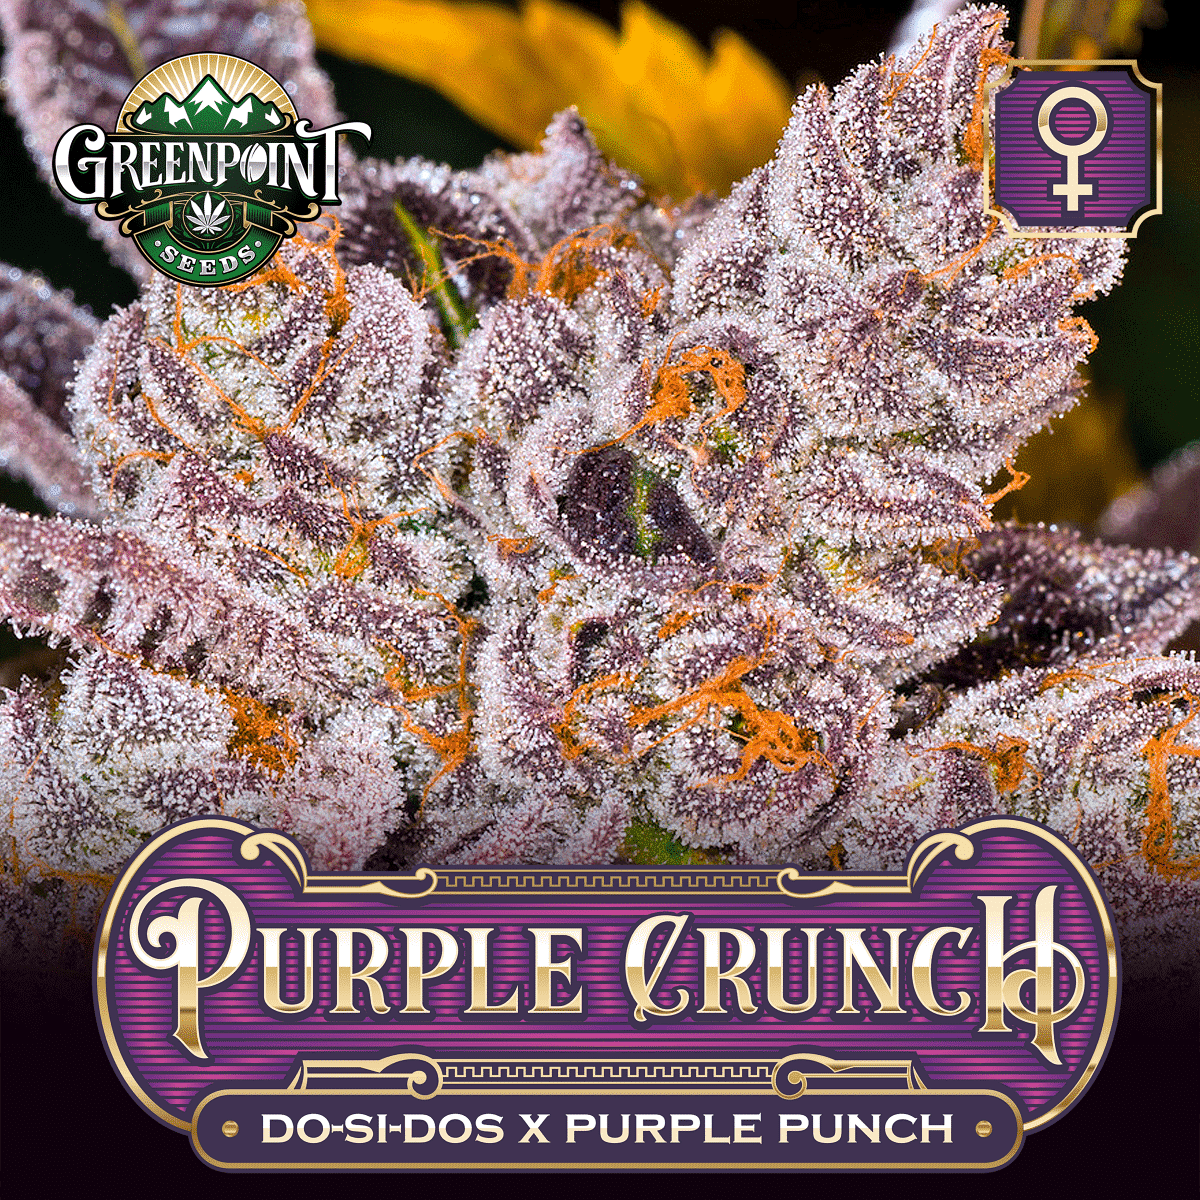 Do-Si-Dos x Purple Punch Feminized Cannabis Seeds